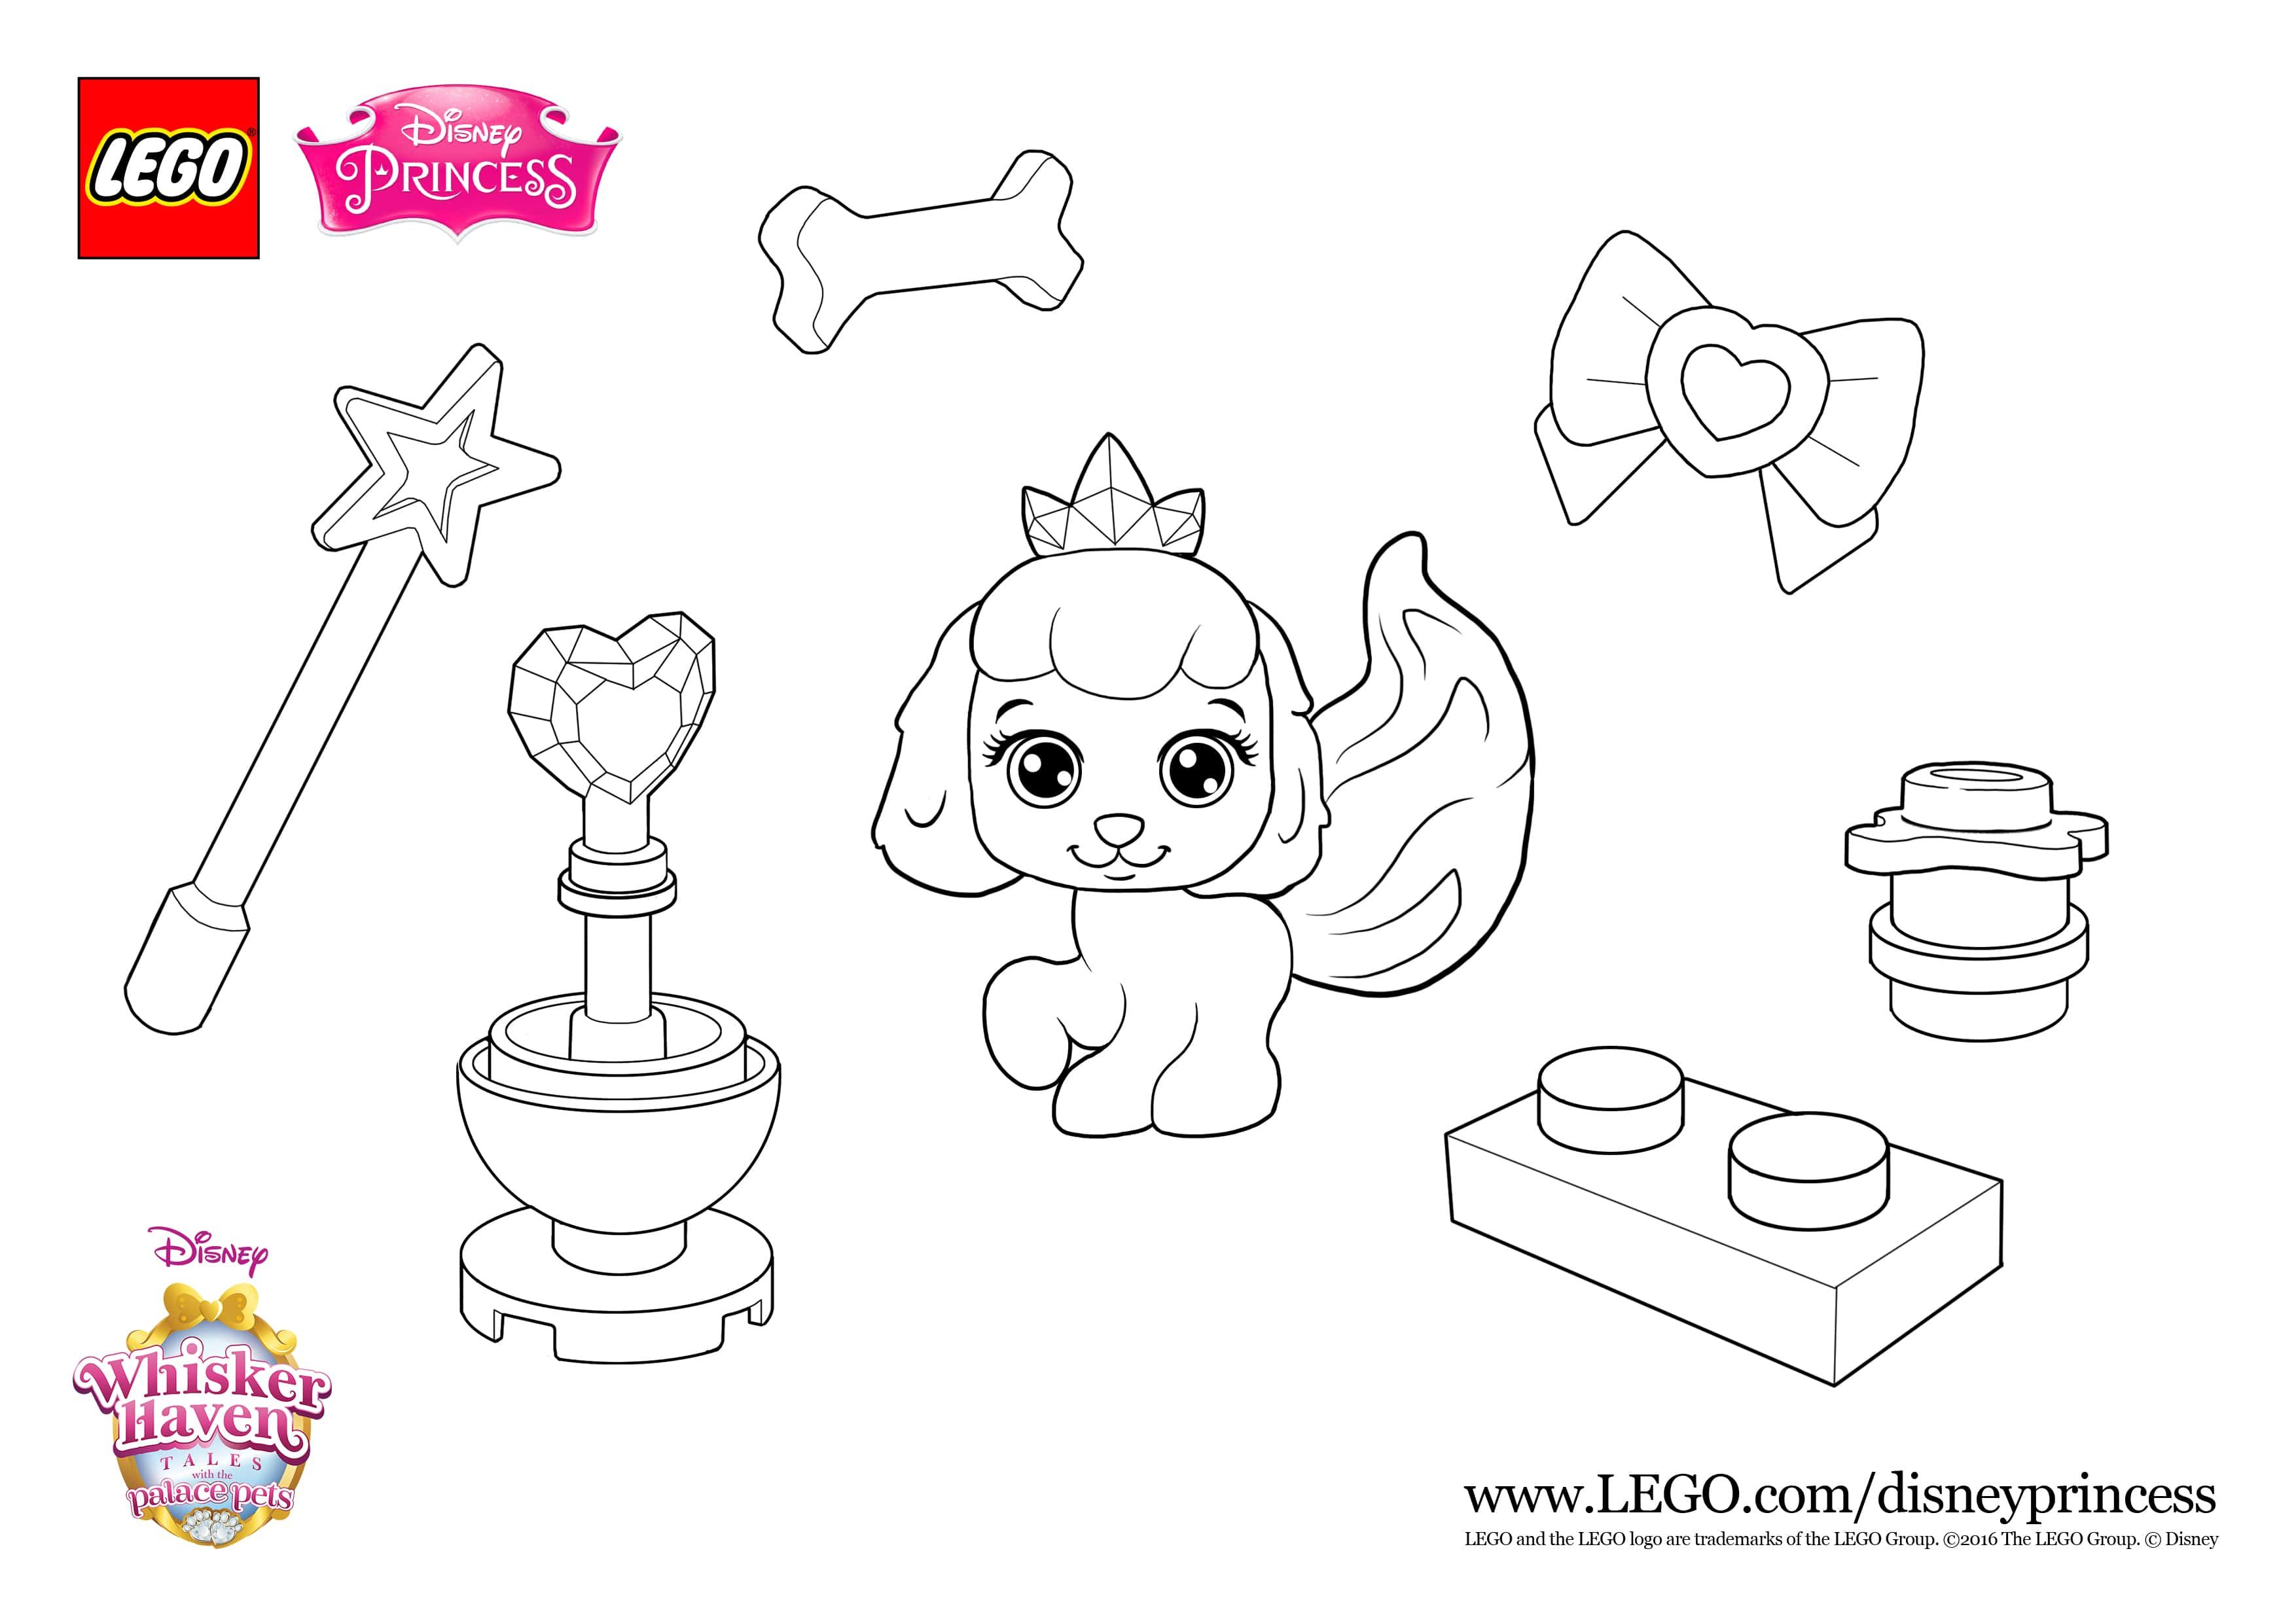 Print the sheet and get your pens ready for the cute colour in fun